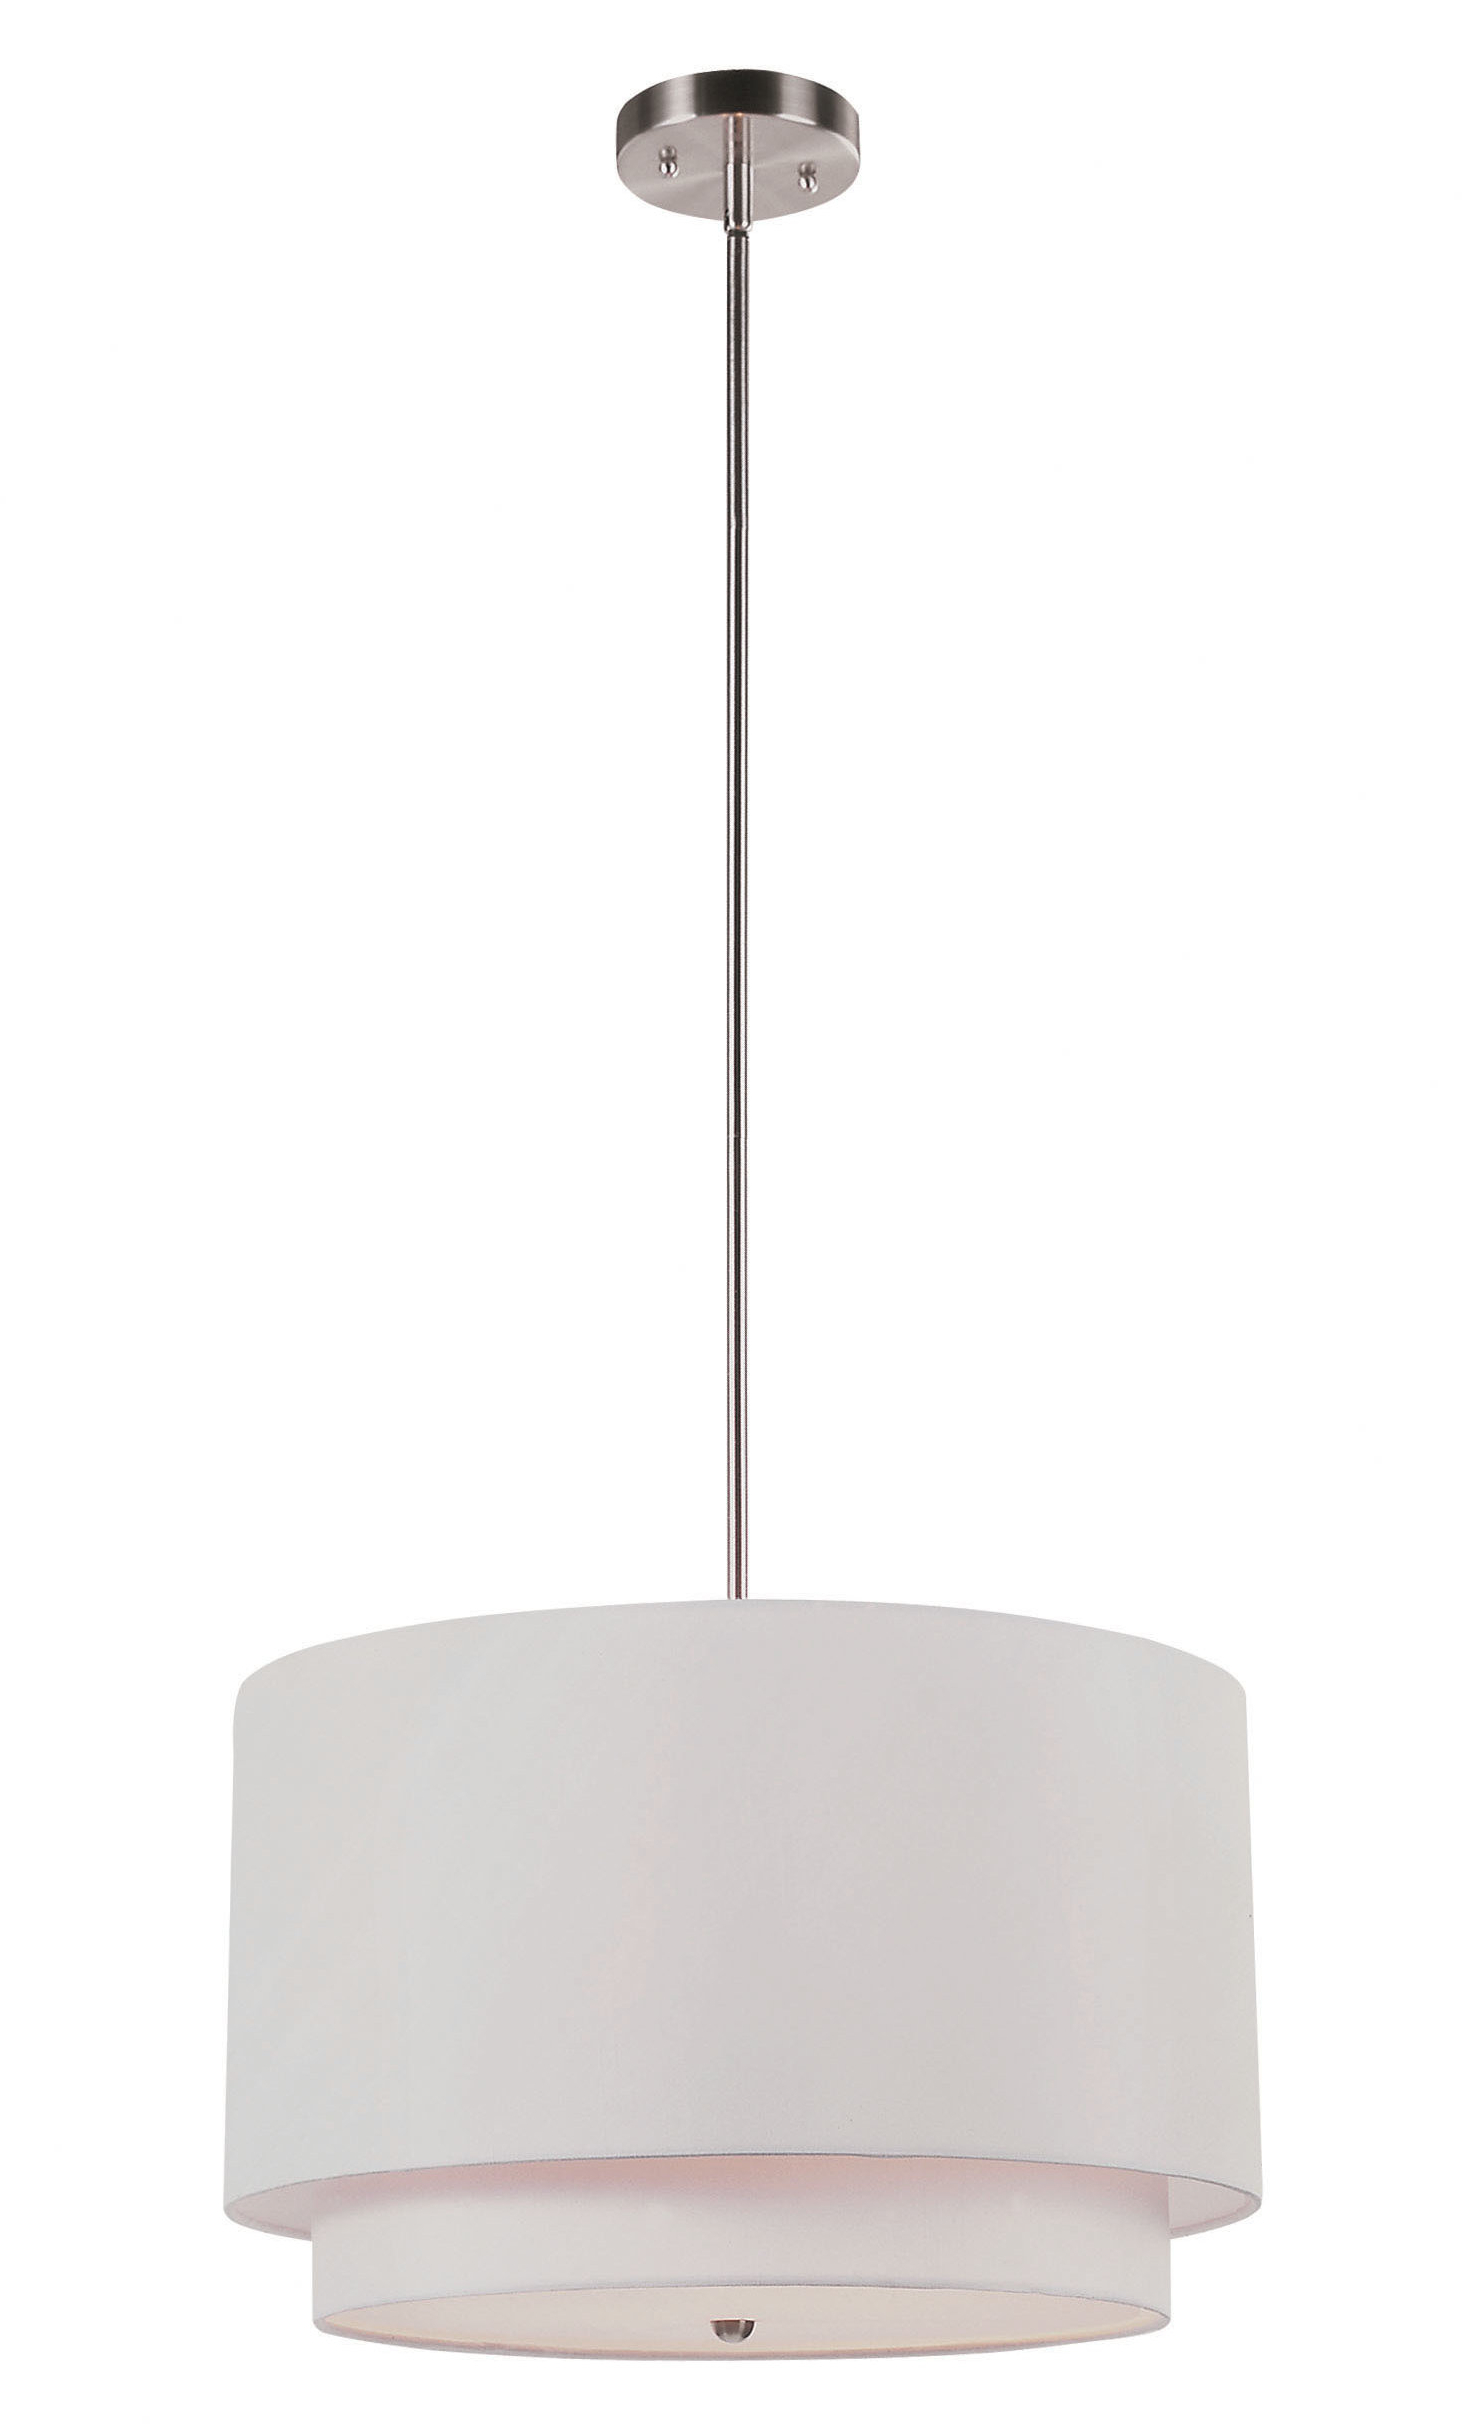 Kasey 3 Light Single Drum Pendants Pertaining To Best And Newest Friedland 3 Light Drum Tiered Pendant (View 3 of 25)